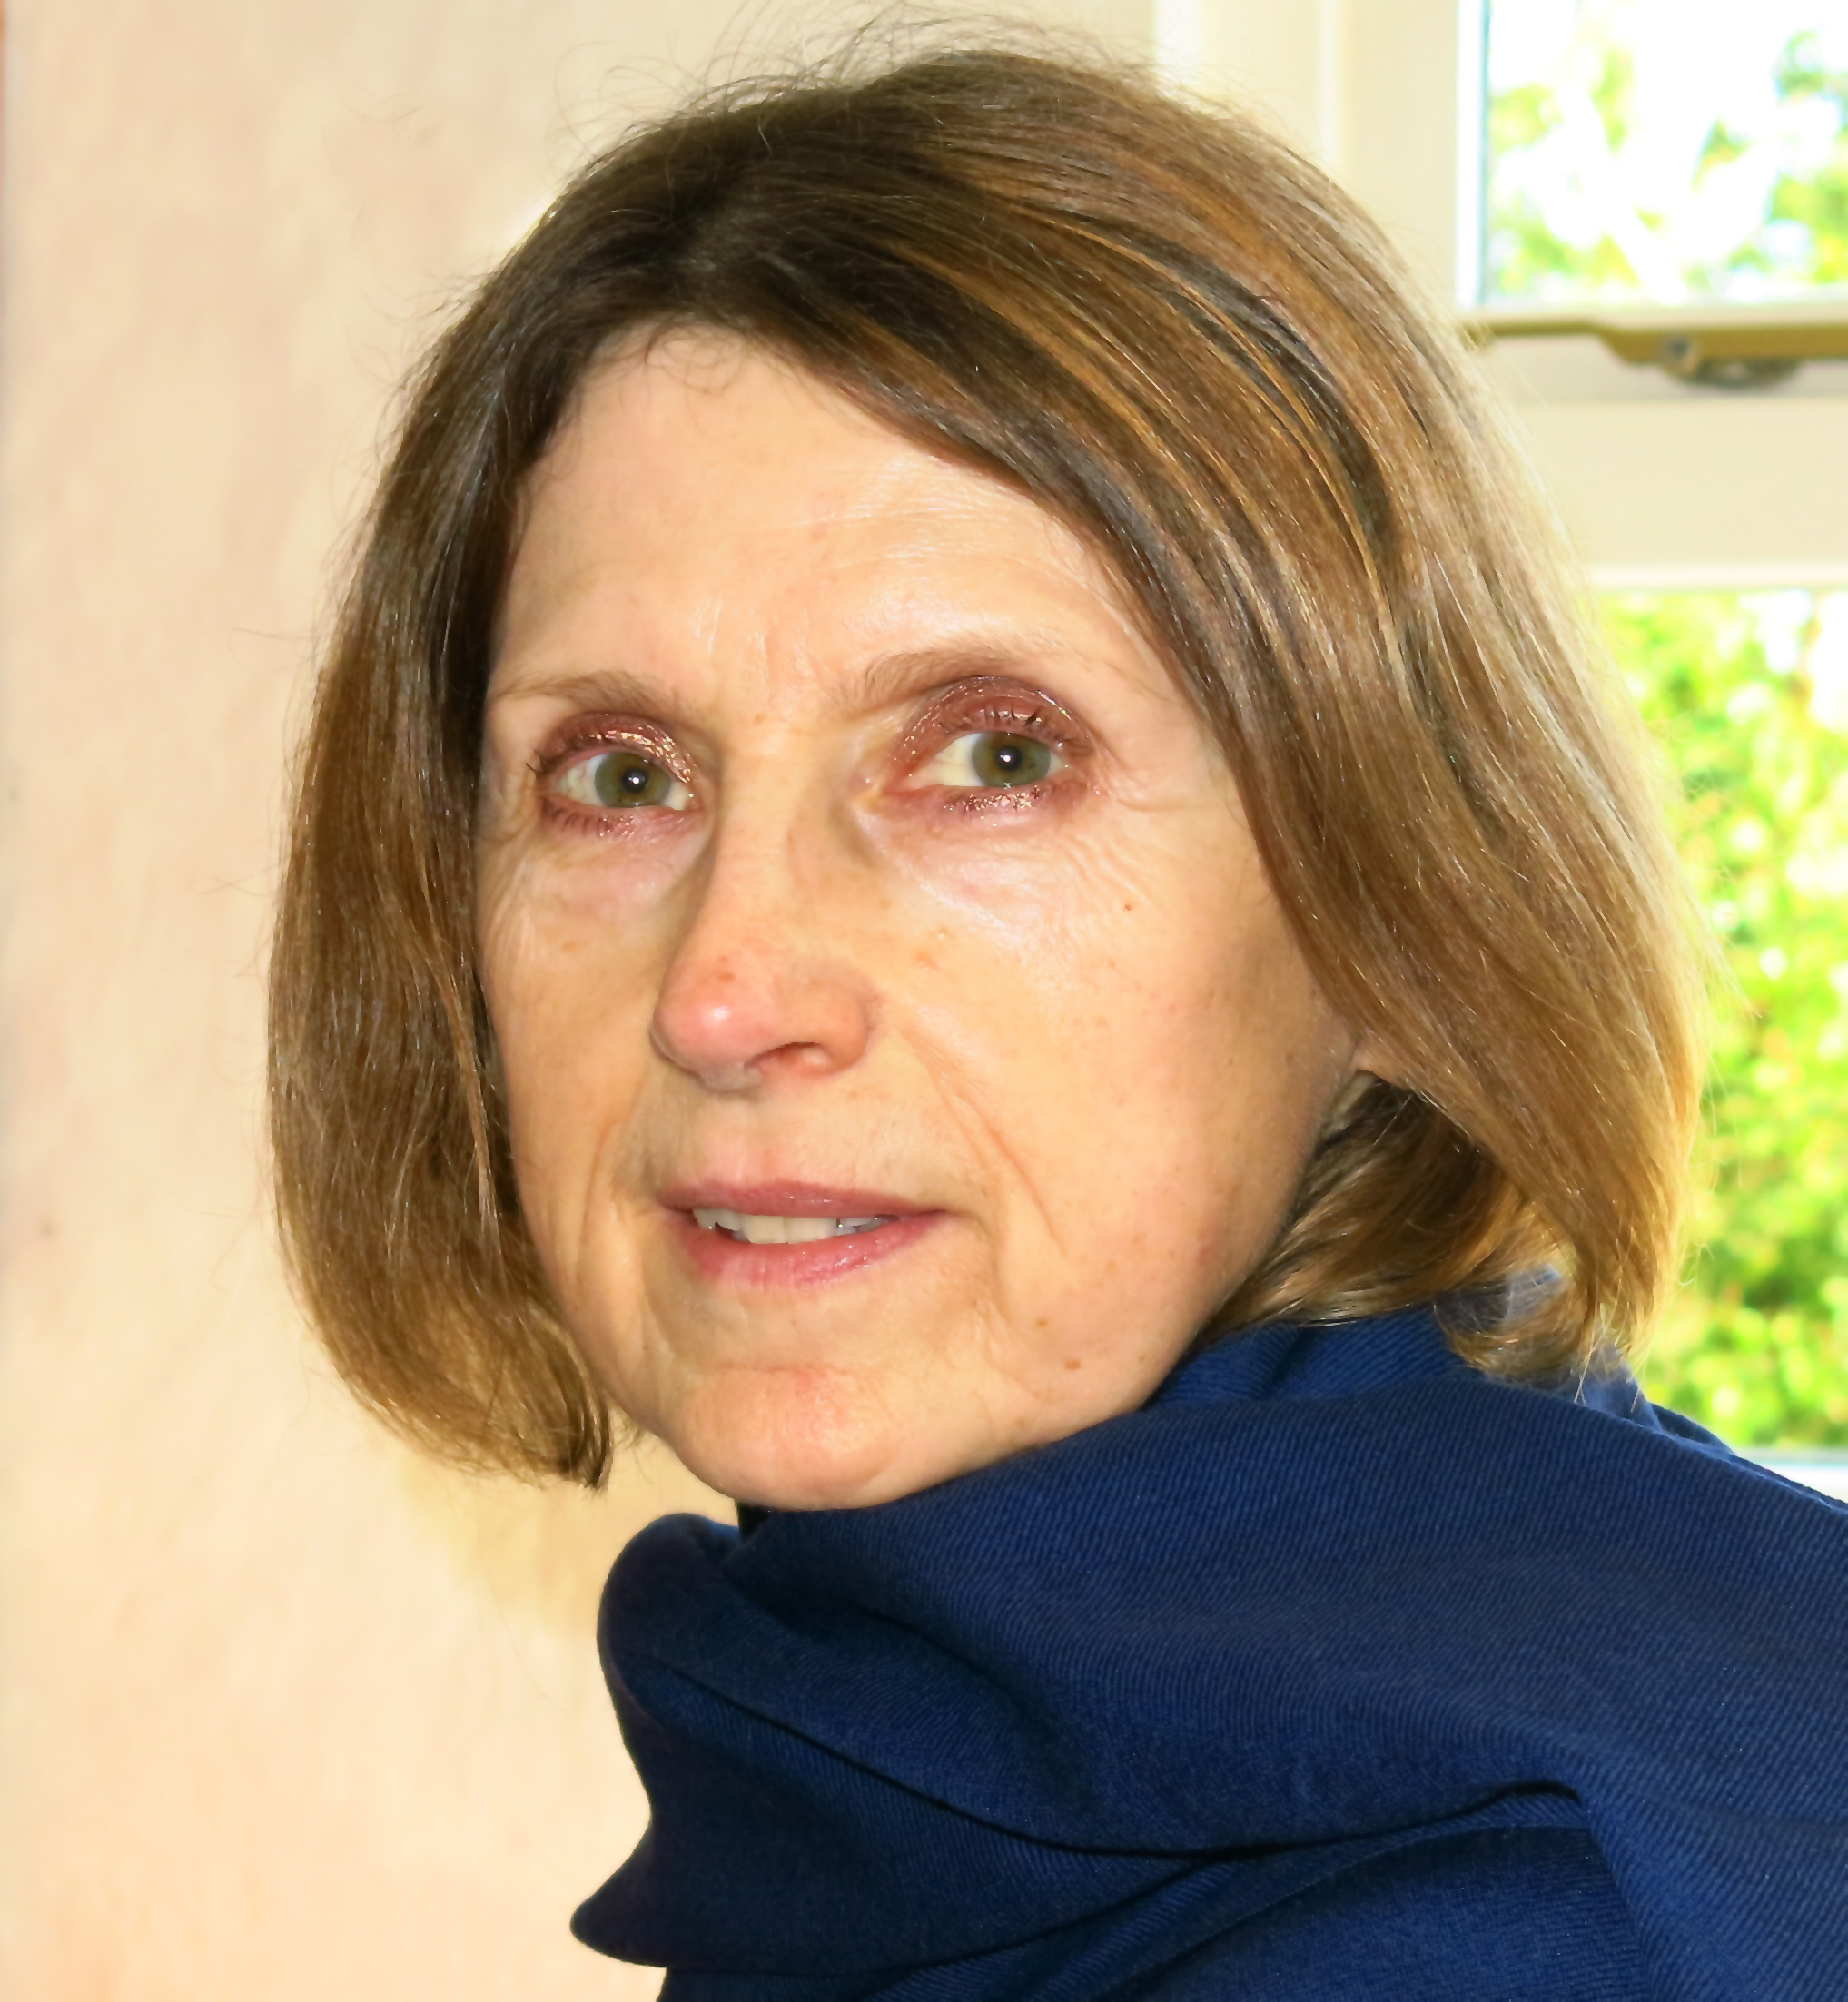 About Jeanne MccARten - Jeanne McCarten has been involved in English Language Teaching in various roles for over 35 years. As a teacher, she has taught in Sweden, France, Malaysia and the UK, teaching at all levels from beginners to very advanced students. As a publisher, she specialised in developing grammar and vocabulary materials as well as materials to prepare students for Cambridge examinations. She was also closely involved in the development of the spoken English sections of the Cambridge International Corpus. Currently a freelance ELT writer and occasional teacher, her main interests lie in applying insights from corpus research to language teaching, about which she has published several academic papers. She is co-author of the internationally successful and ground breaking corpus-informed courses Touchstone, Viewpoint and Grammar for Business, all published by Cambridge University Press.